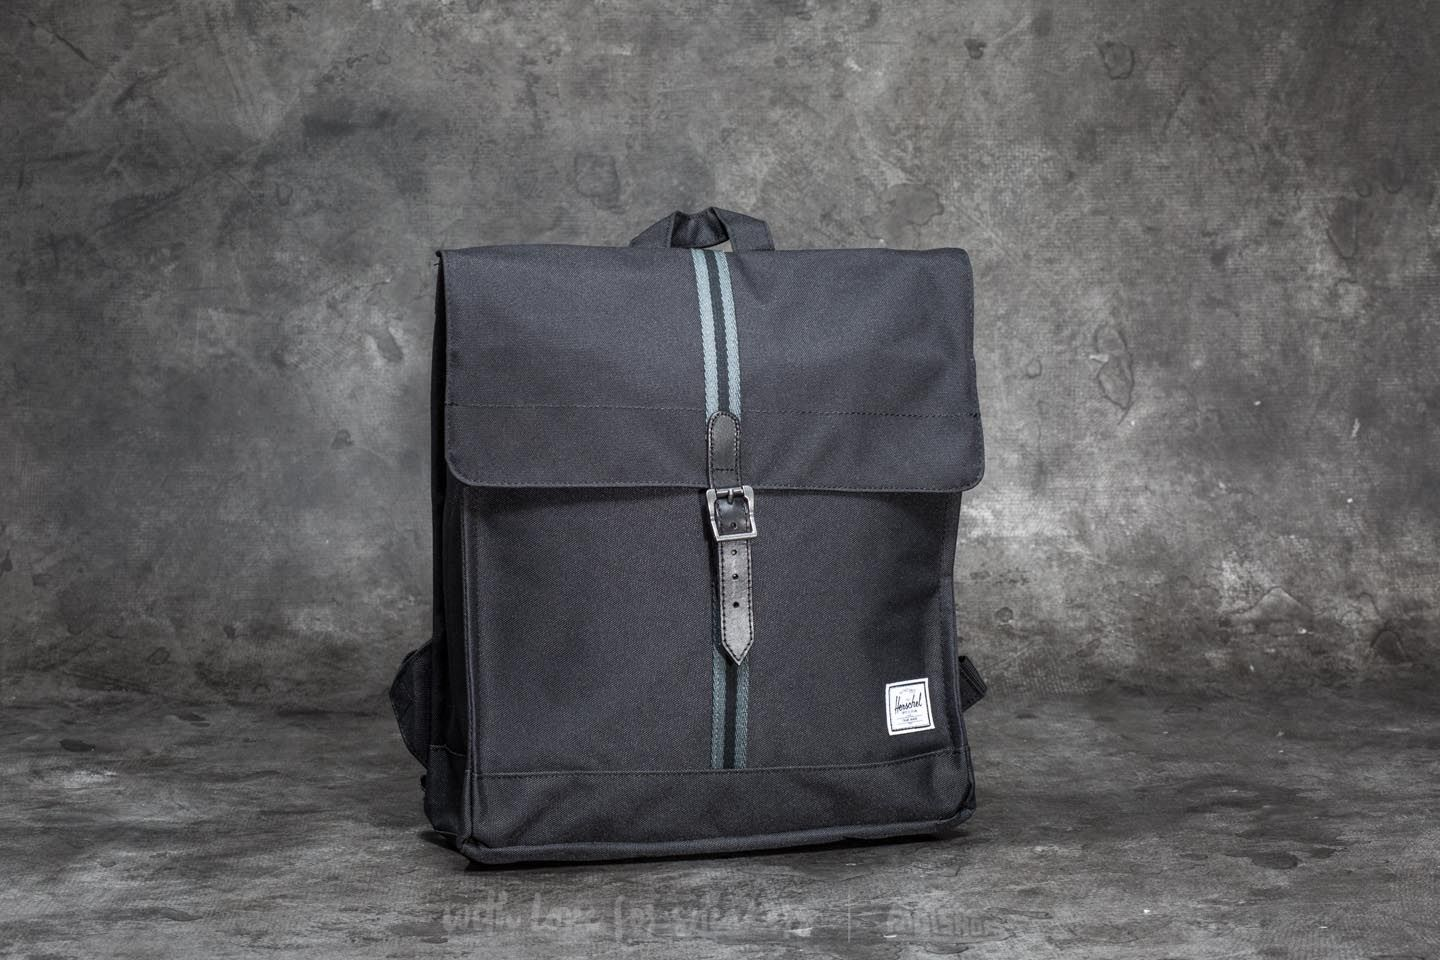 80ab6913c8e3 Herschel Supply Co. City Mid-Volume Backpack Black  Dark Shadow ...